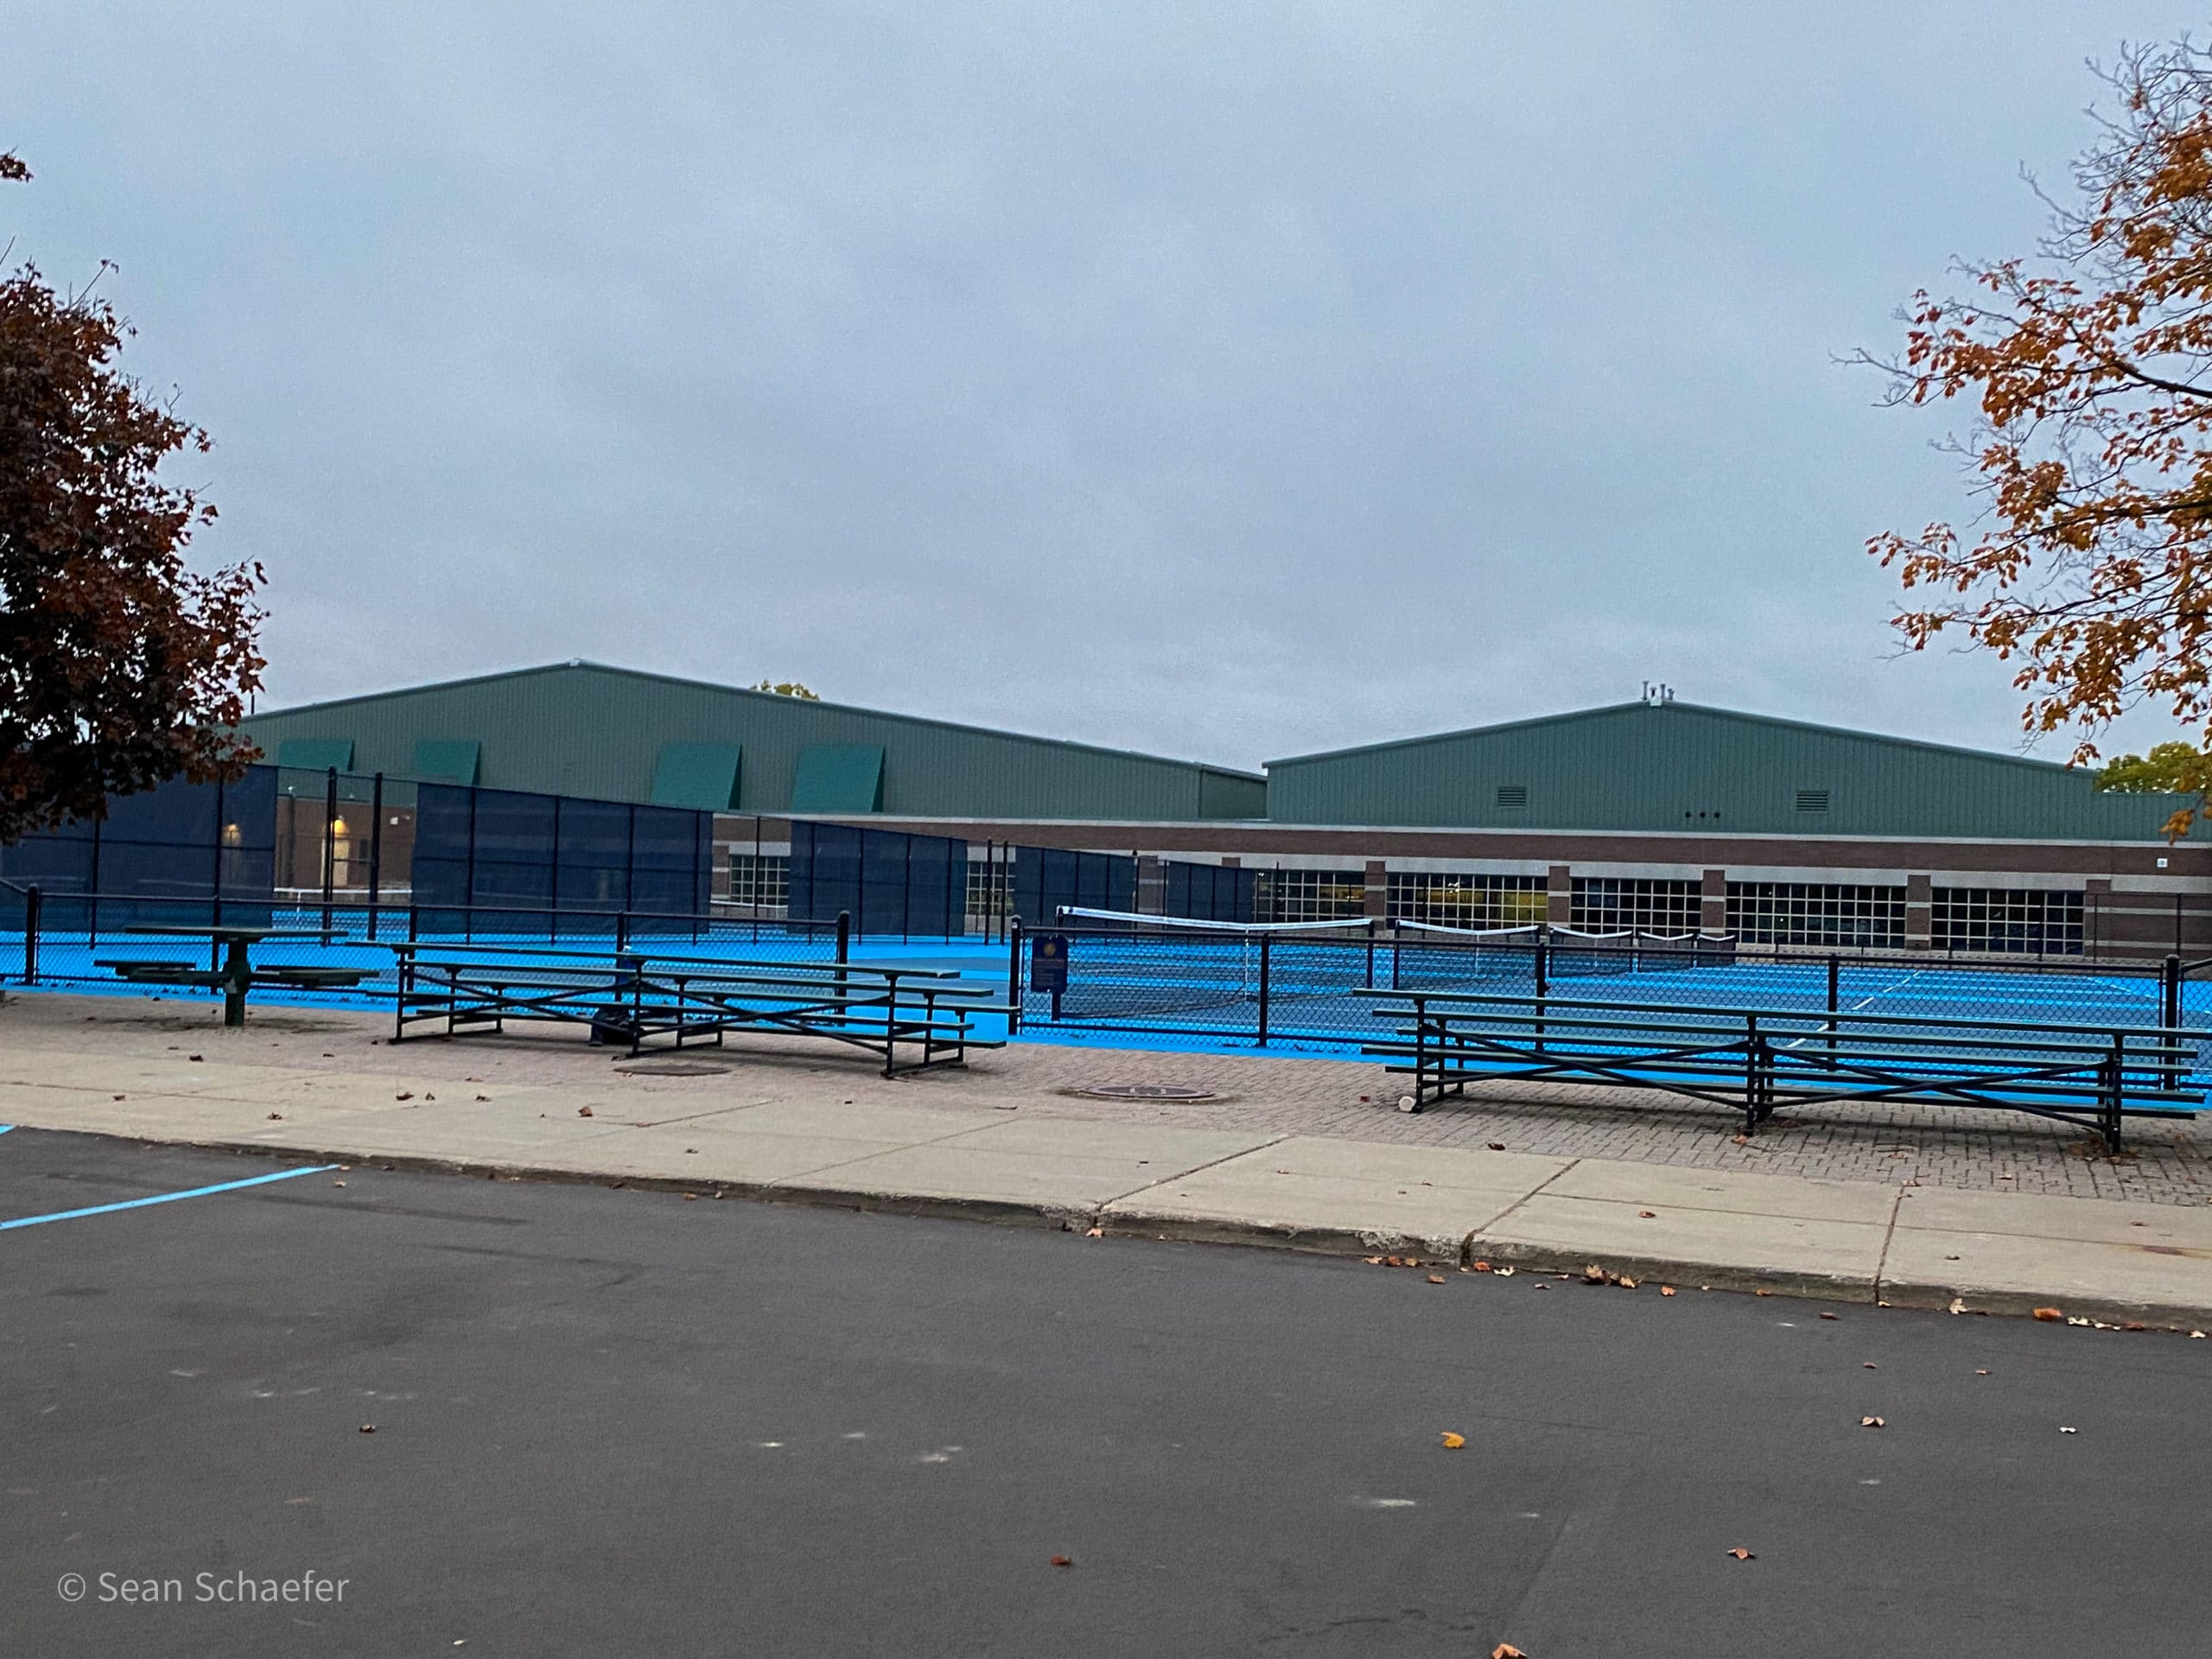 Image of commercial tennis courts with chain link fencing and posts at Detroit Country Day School